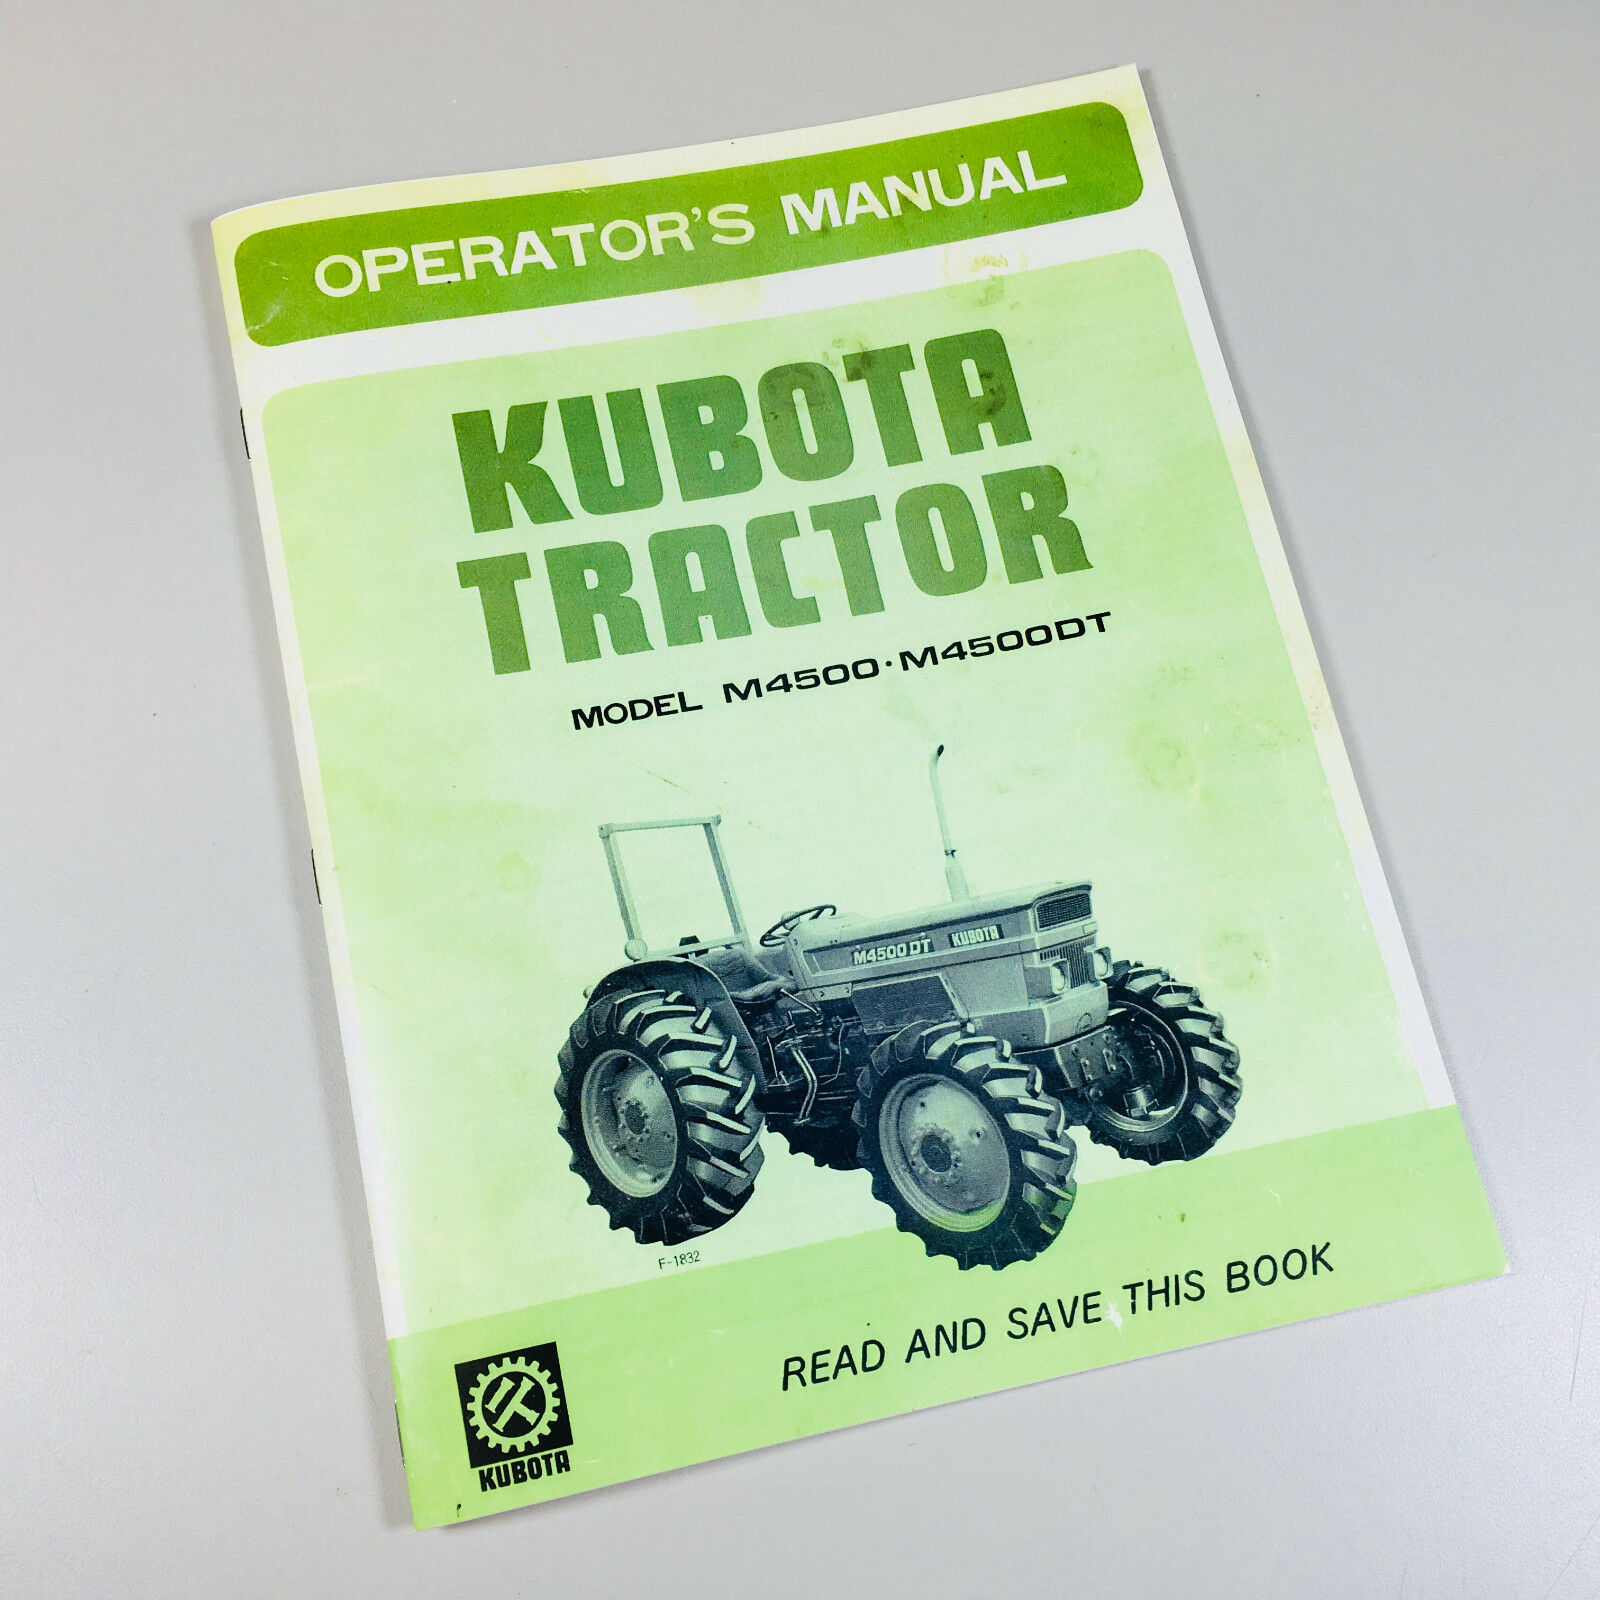 Kubota Tractor M4500 Wiring Diagrams Detailed Schematic Farm Pro Diagram M4500dt Operators Owners Manual Diesel 4wd Electrical Problems